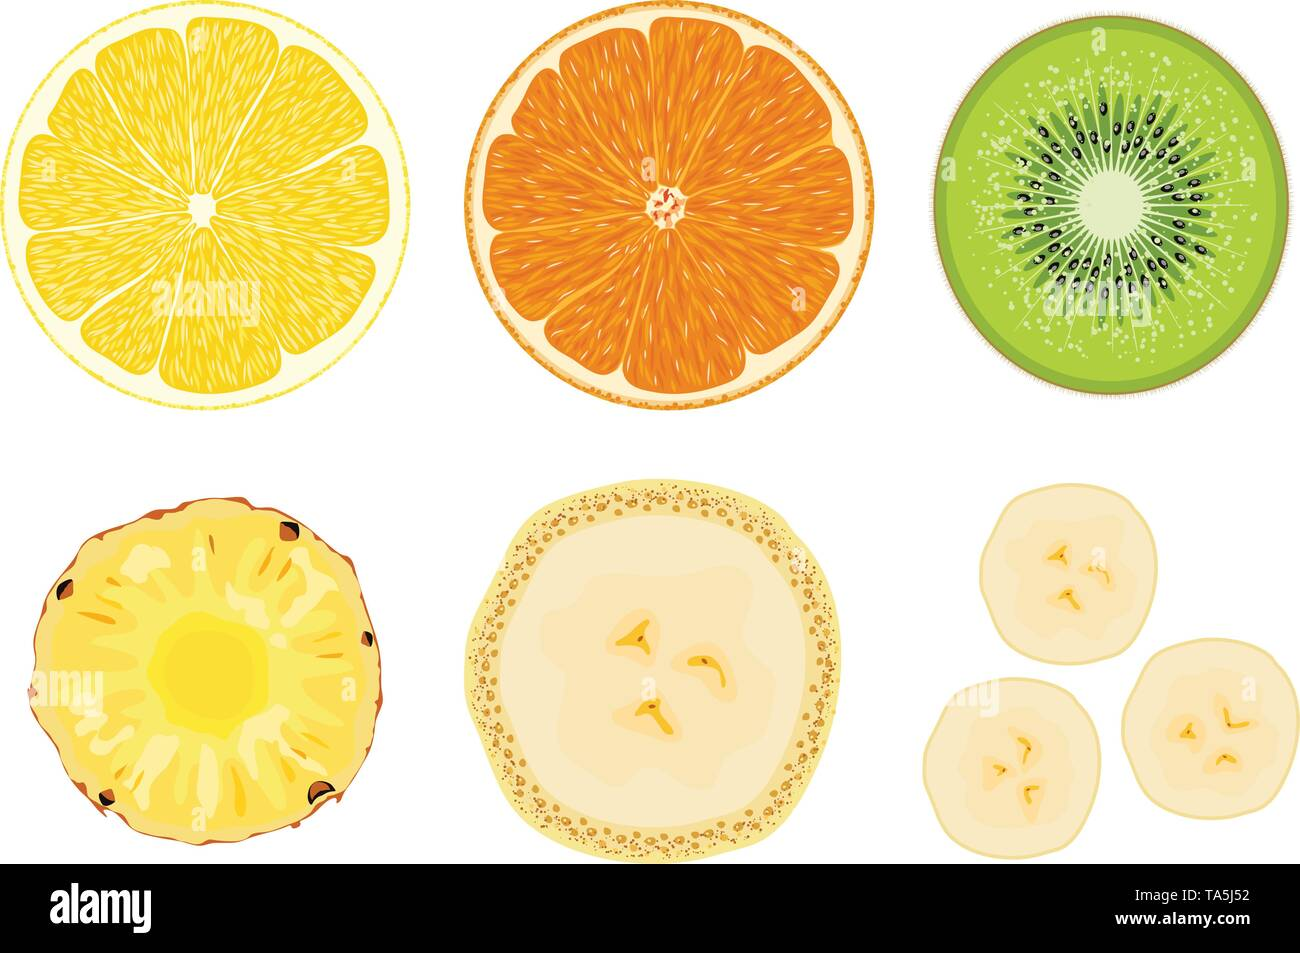 vector collection of fruit cuts isolated on white background. slice of lemon, orange, kiwi, pineapple and banana. half cut of fresh fruits for food il - Stock Image